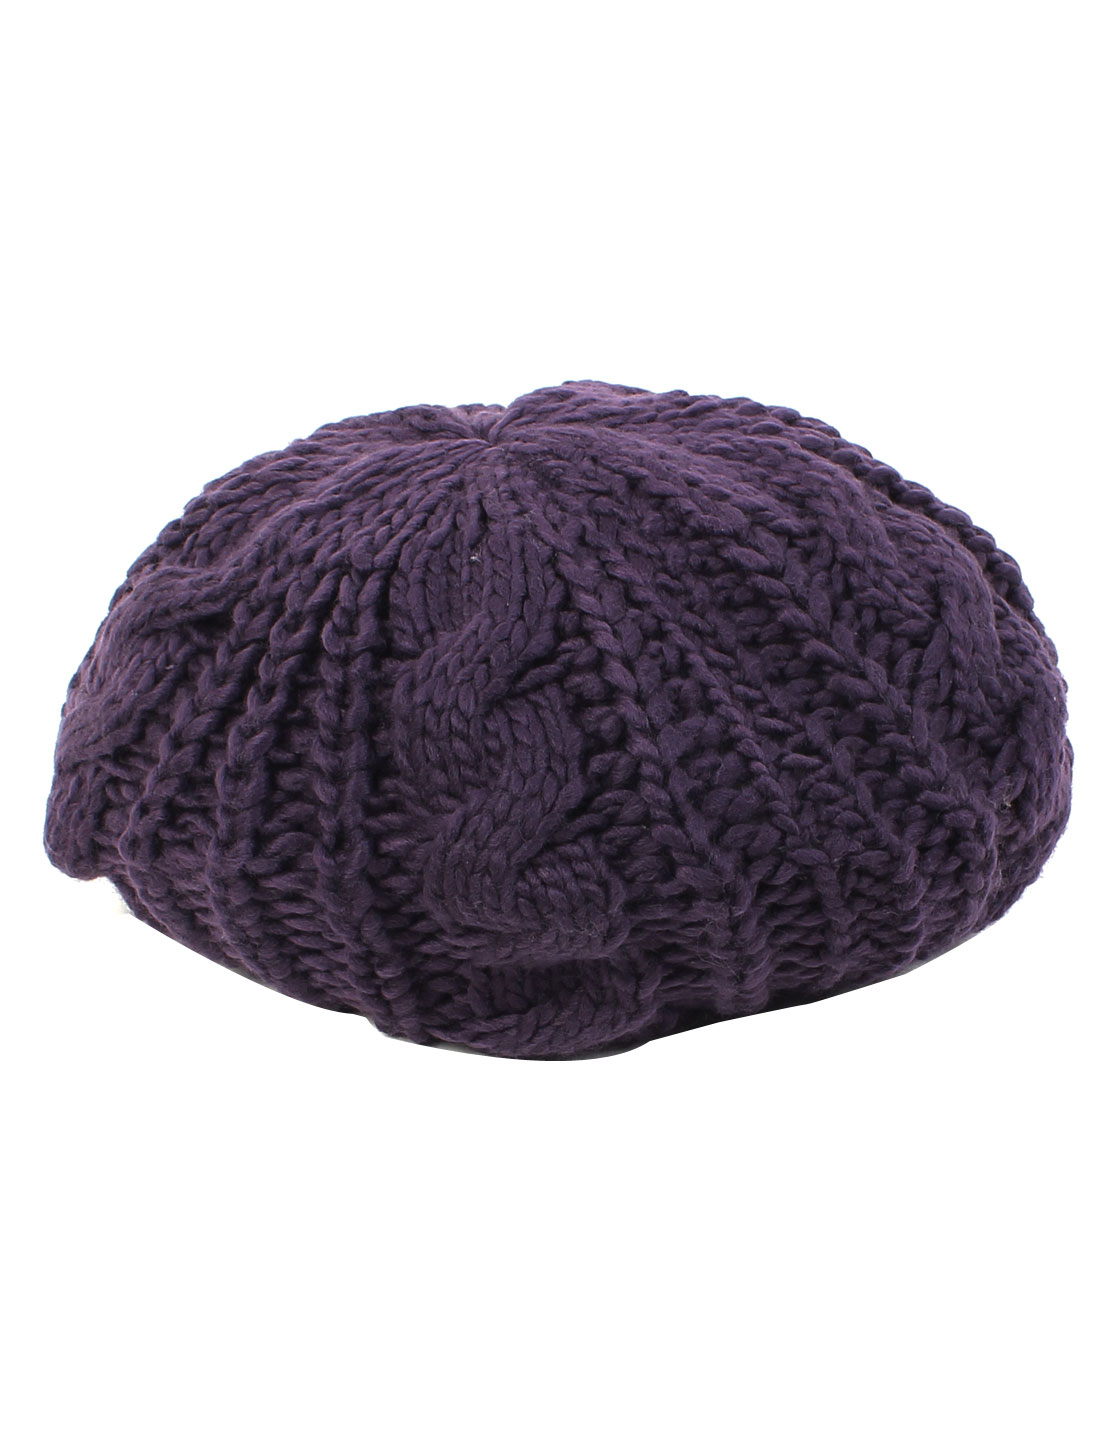 Lady Fashion Winter Warm Soft Knitted Crochet Baggy Beret Hat Beanie Cap Purple